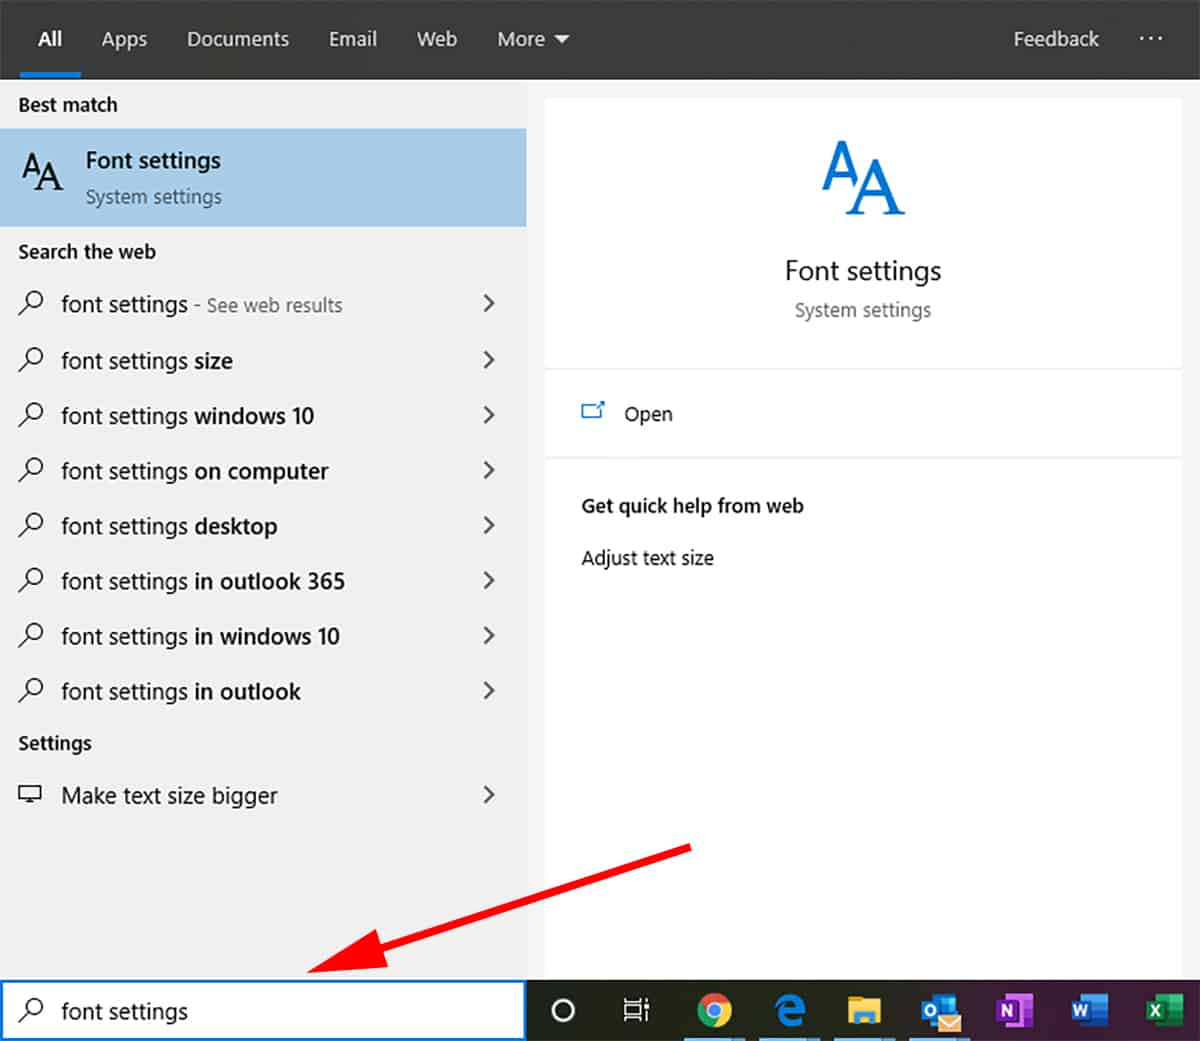 1. Open Font Settings Windows 10